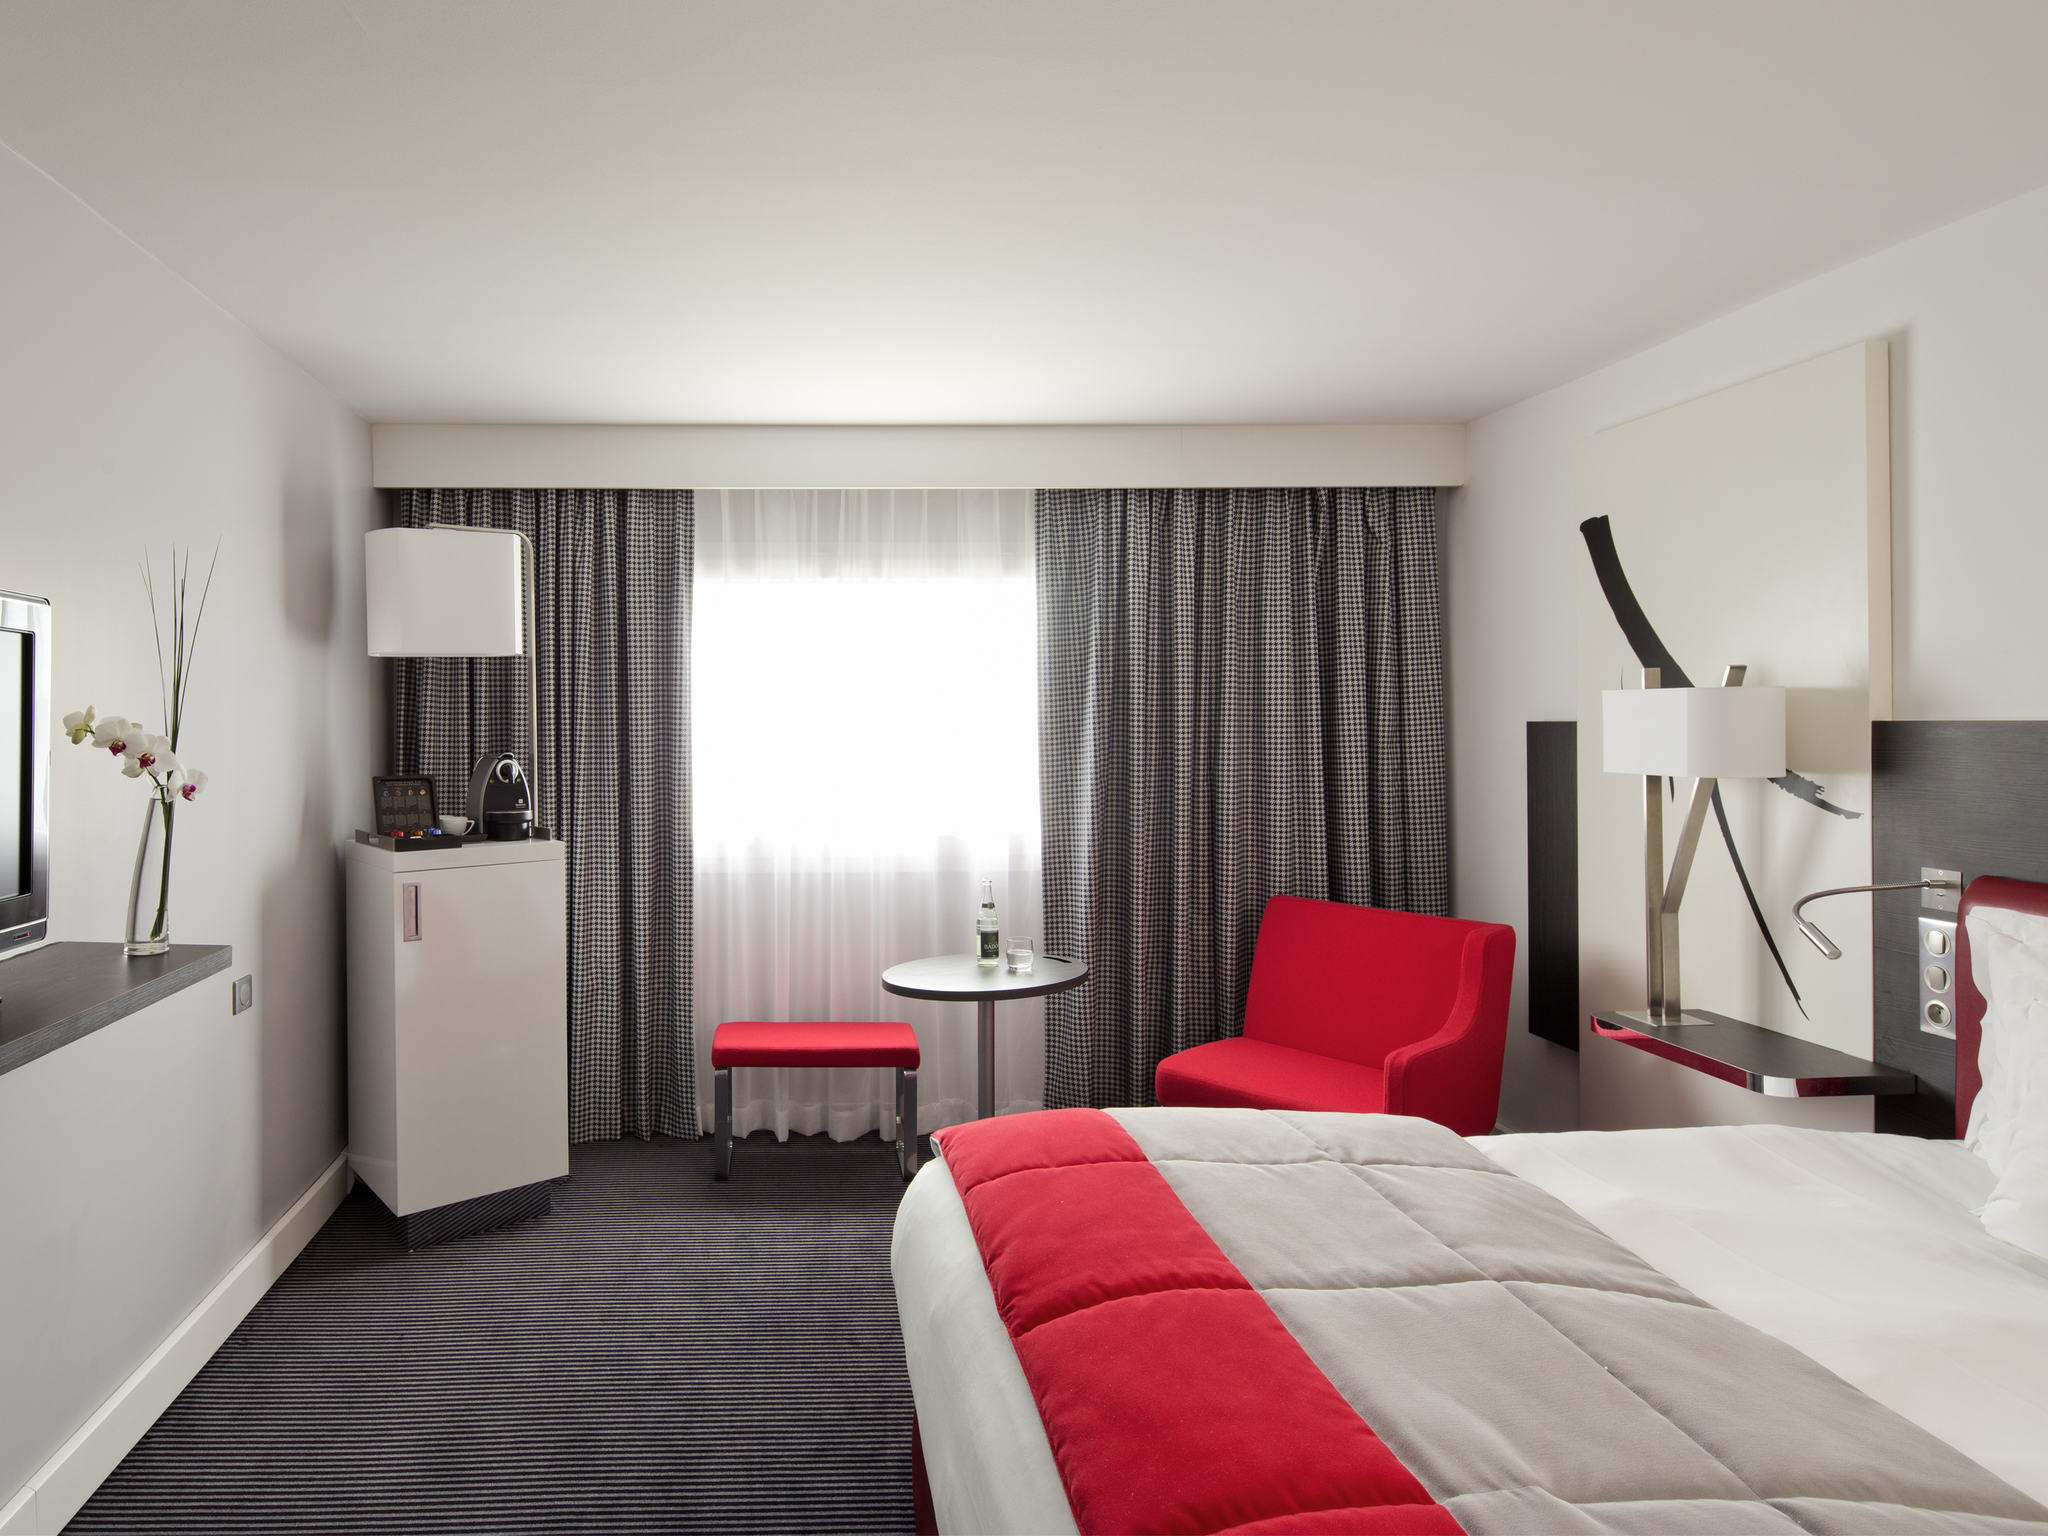 โรงแรม – Hôtel Mercure Paris CDG Airport & Convention